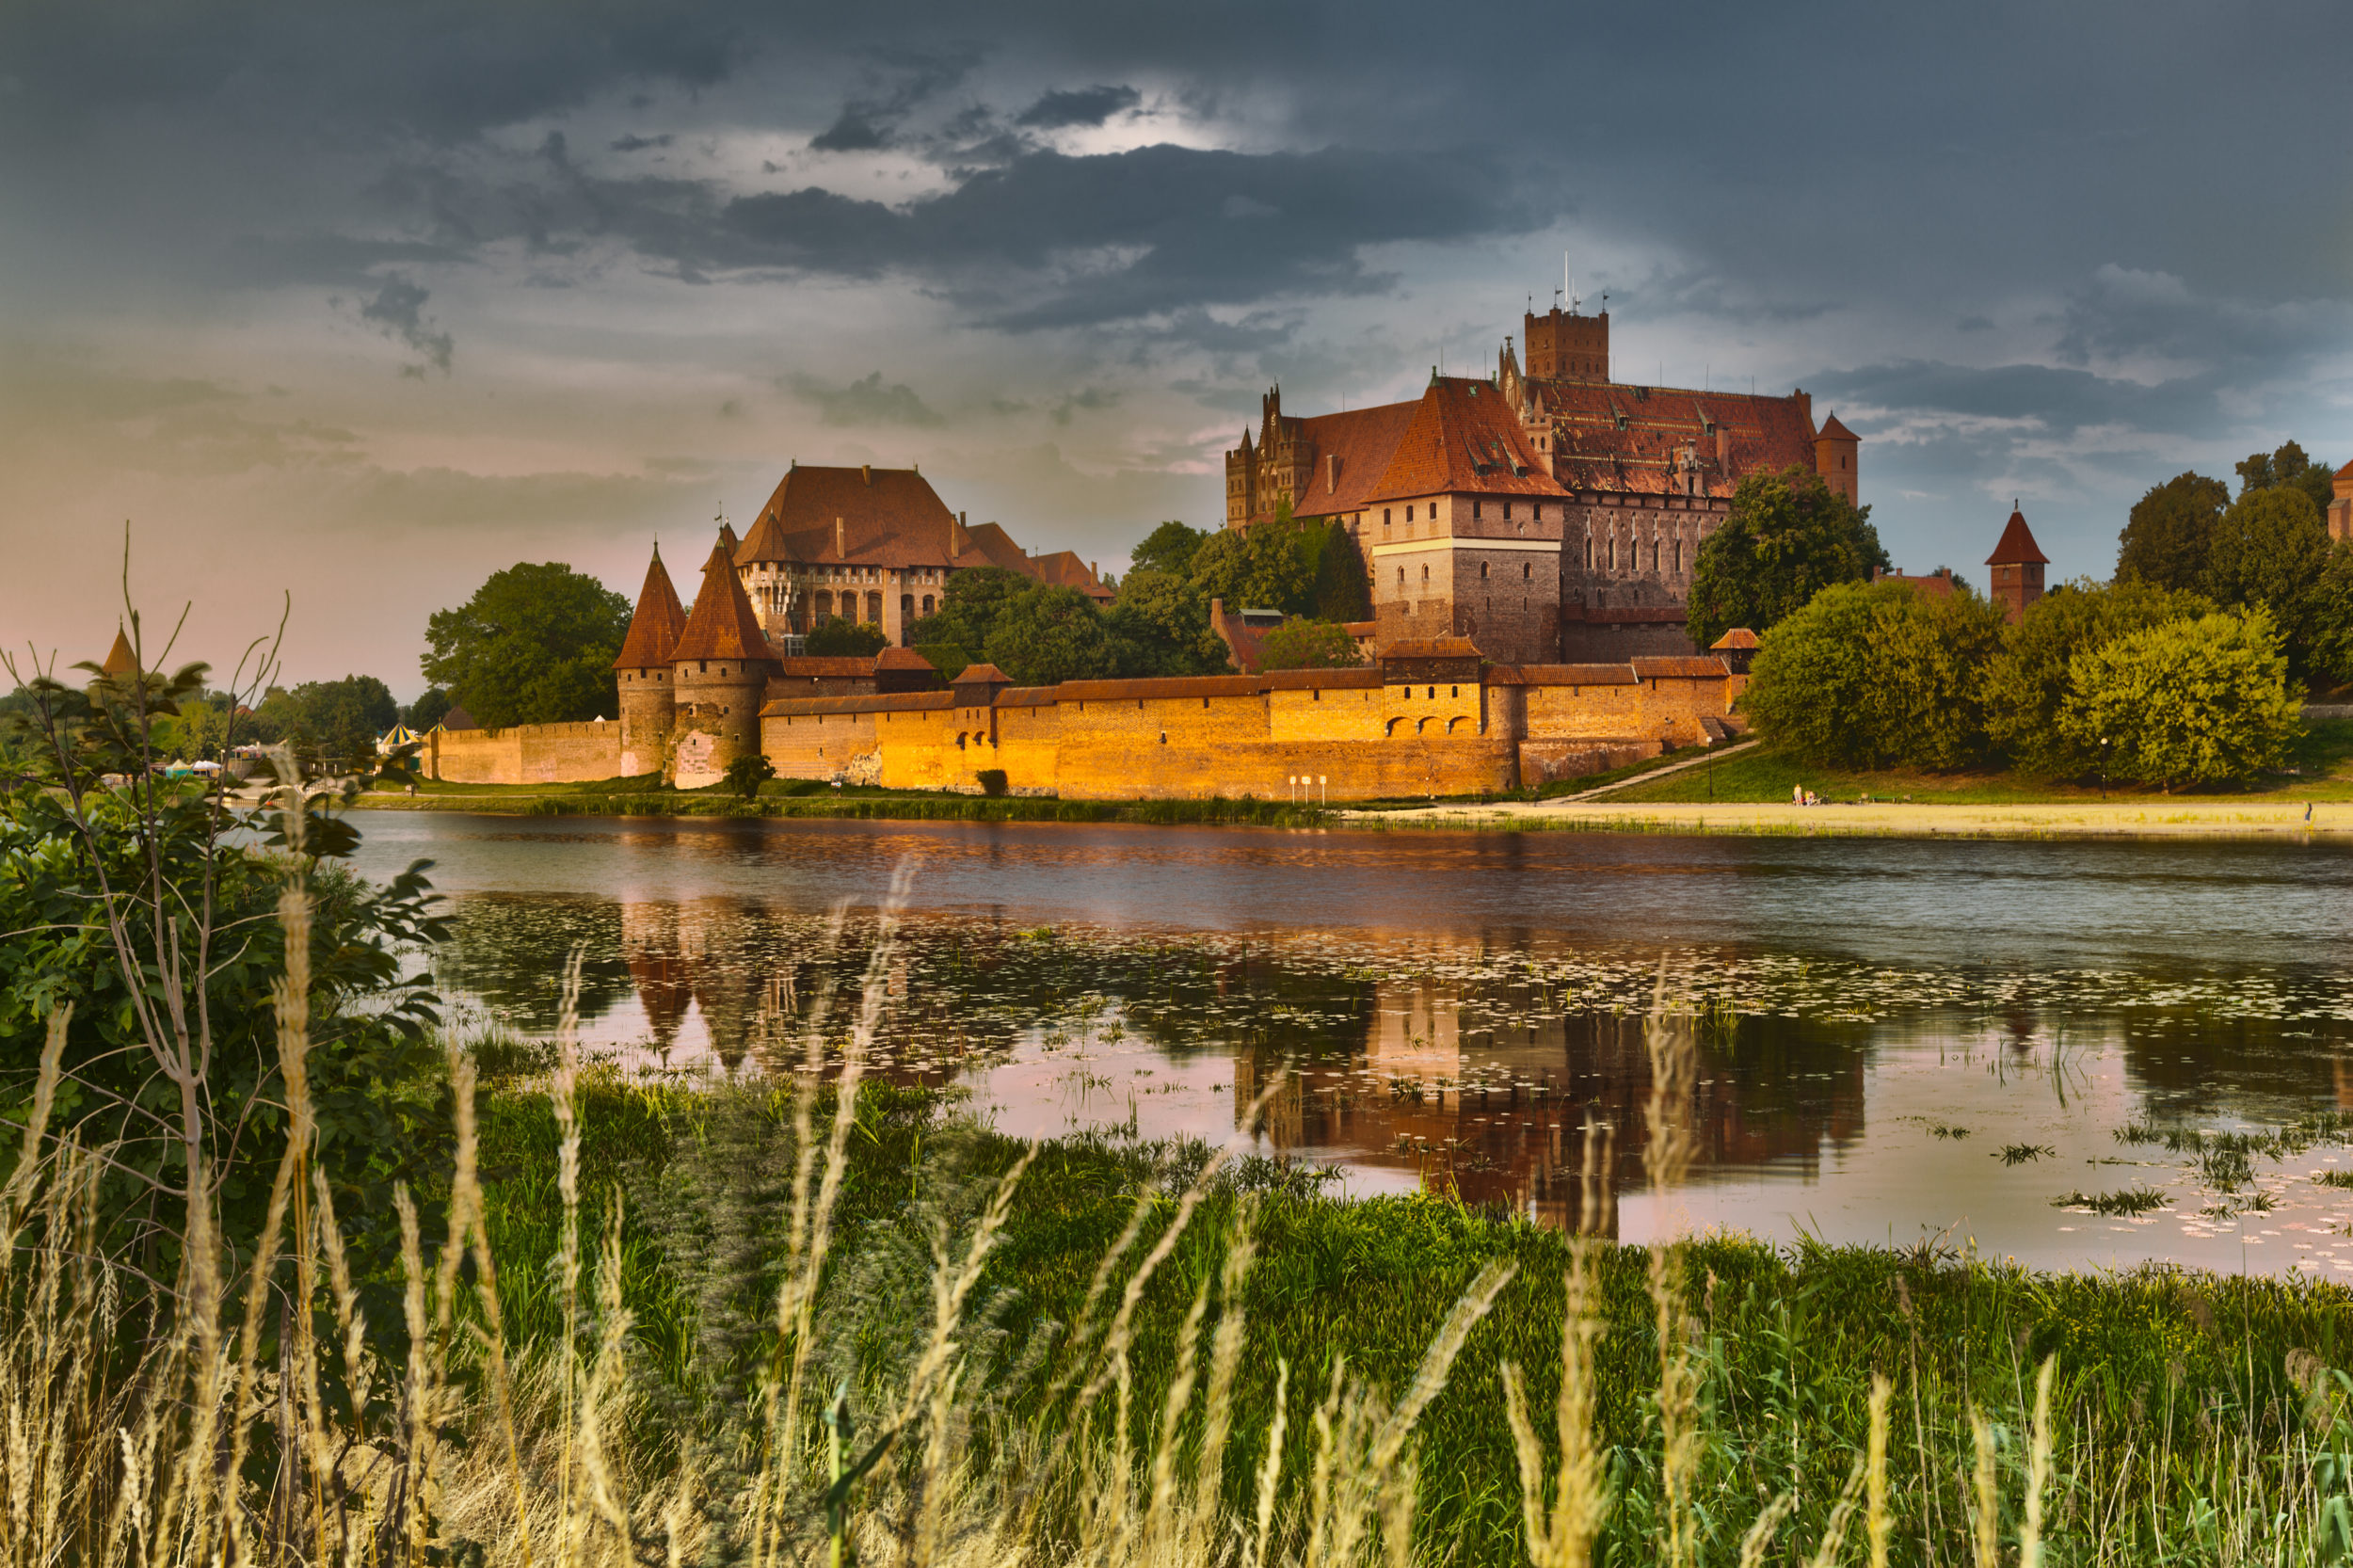 HDR image of medieval castle in Malbork at night with reflection in river